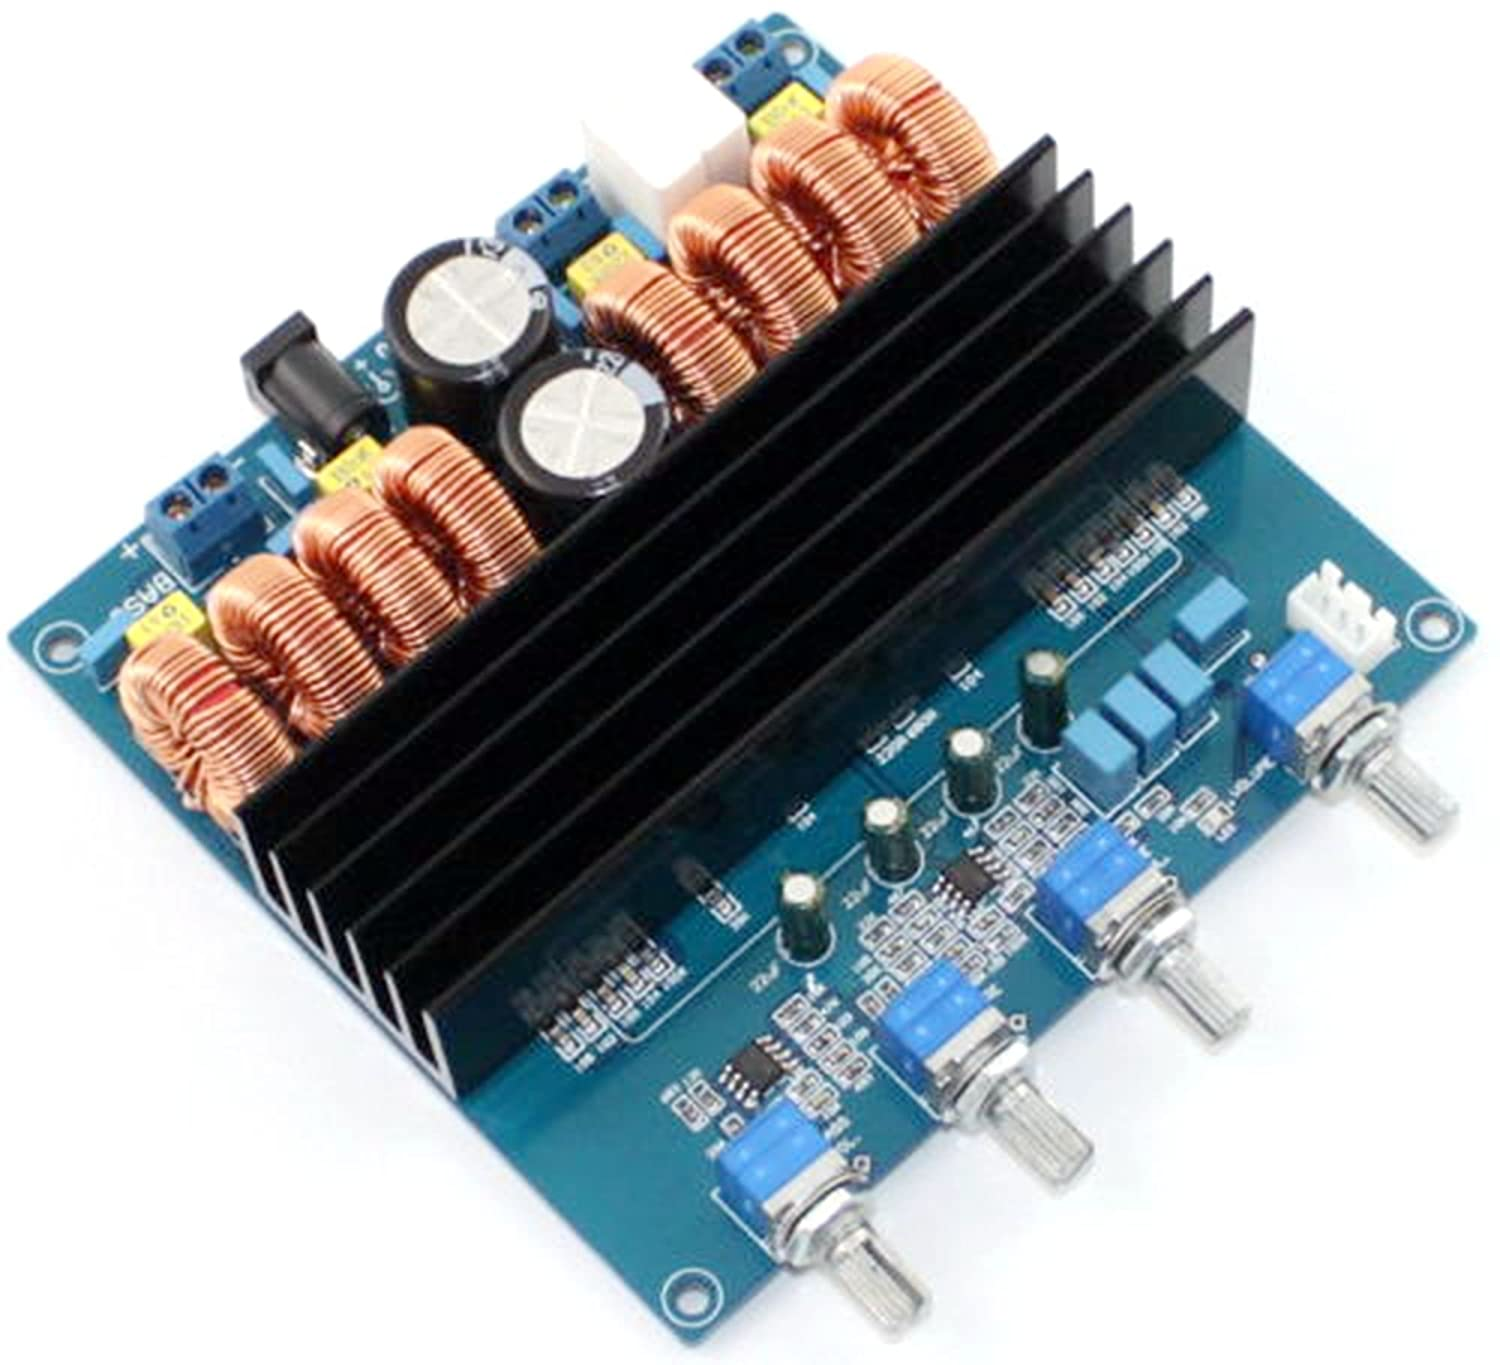 Amazon.com: TDA7498 2.1 Digital Amp Amplifier Board Class D 200W+100W+100W: Home Audio & Theater